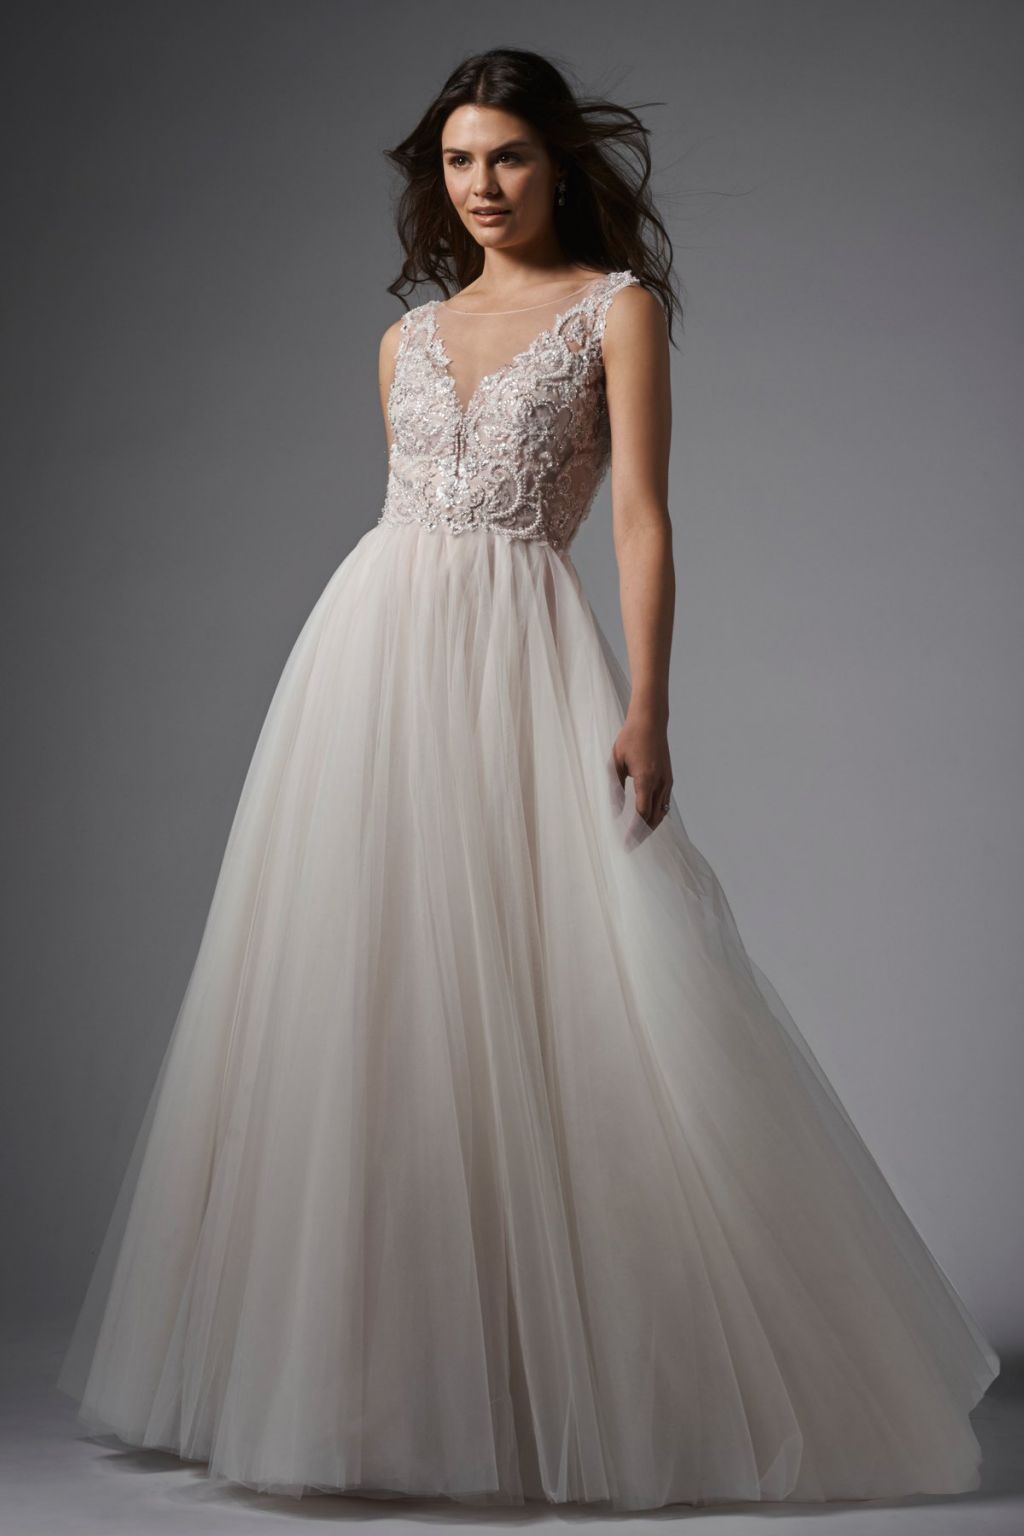 Wtoo Naomi 15761, $1,250 Size: 10 | Sample Wedding Dresses ...